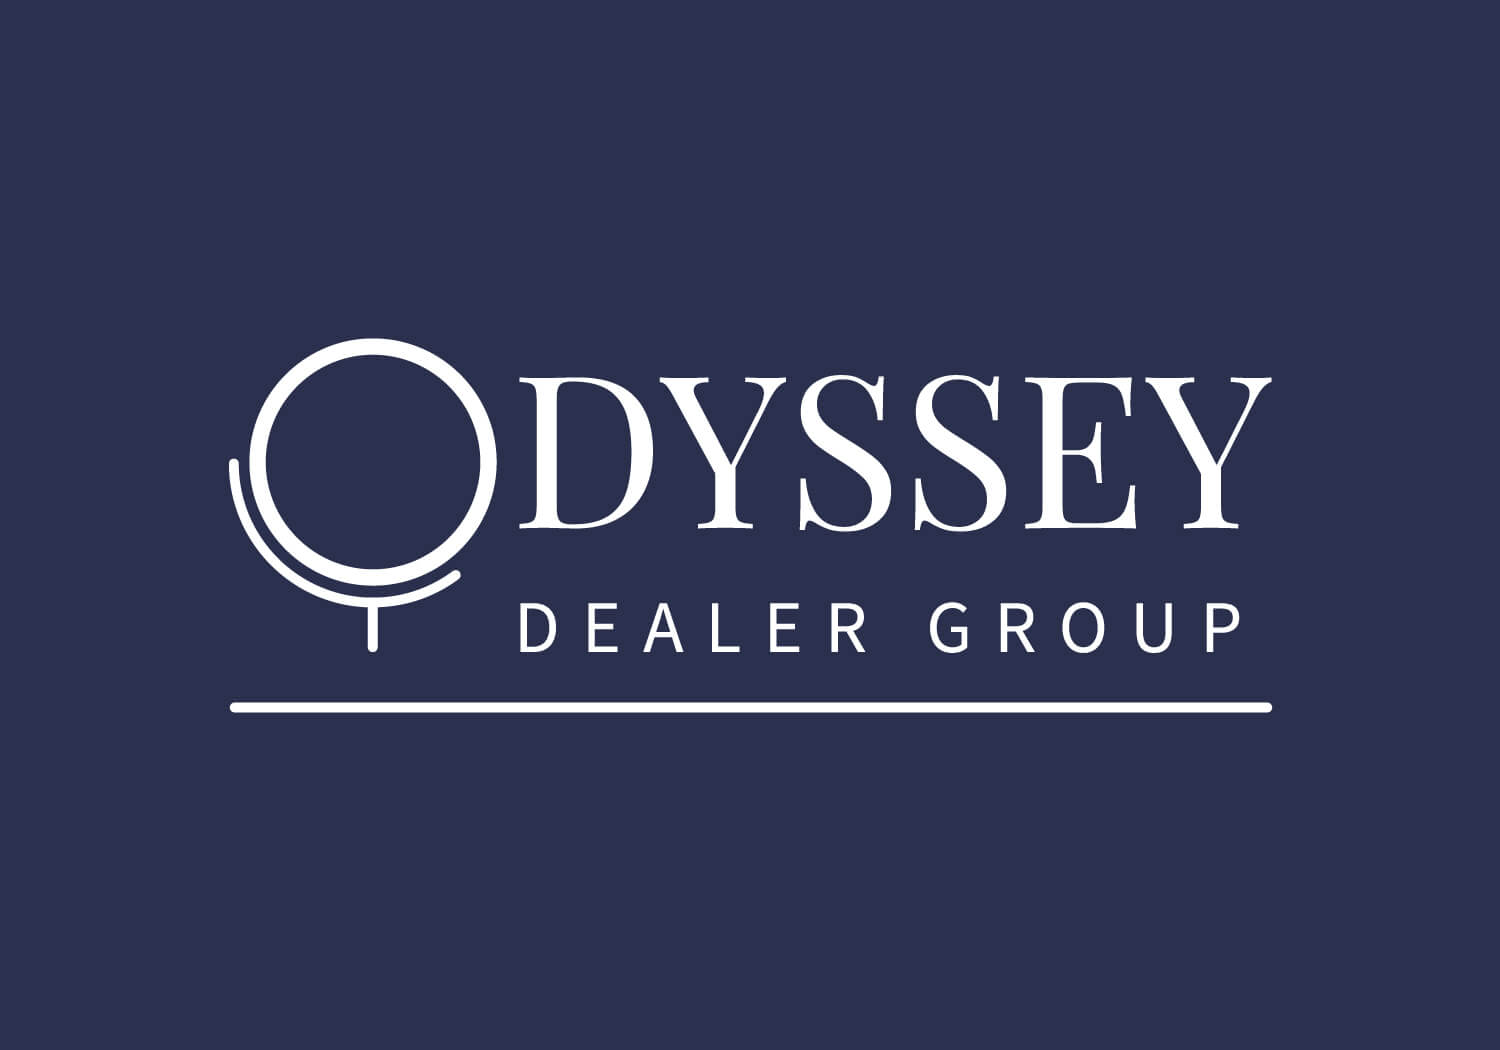 Odyssey Dealer Group